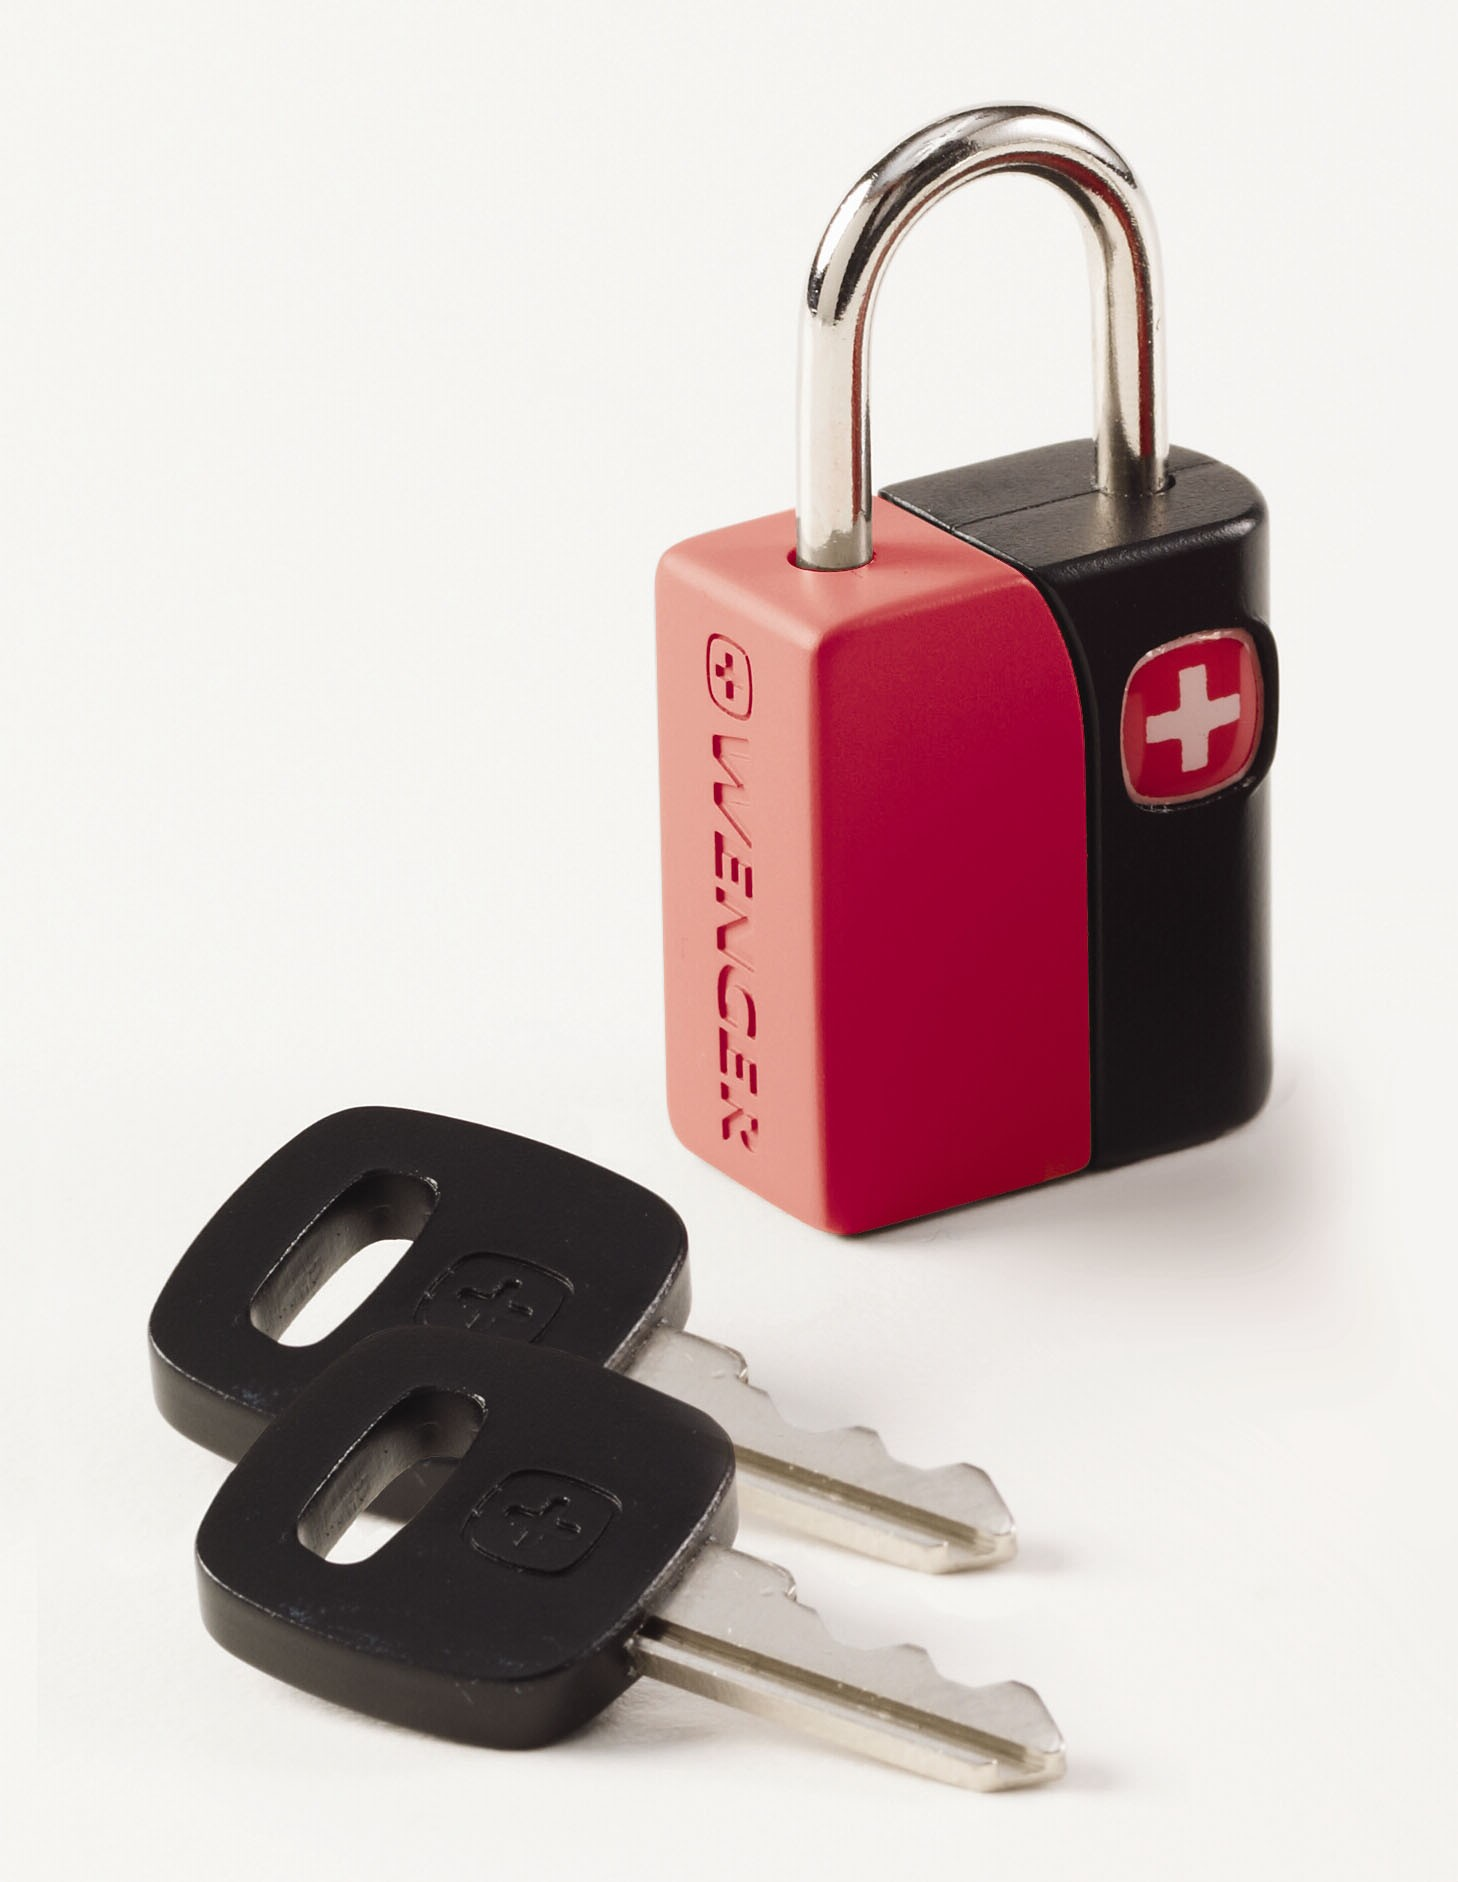 Wenger Key Lock in Red